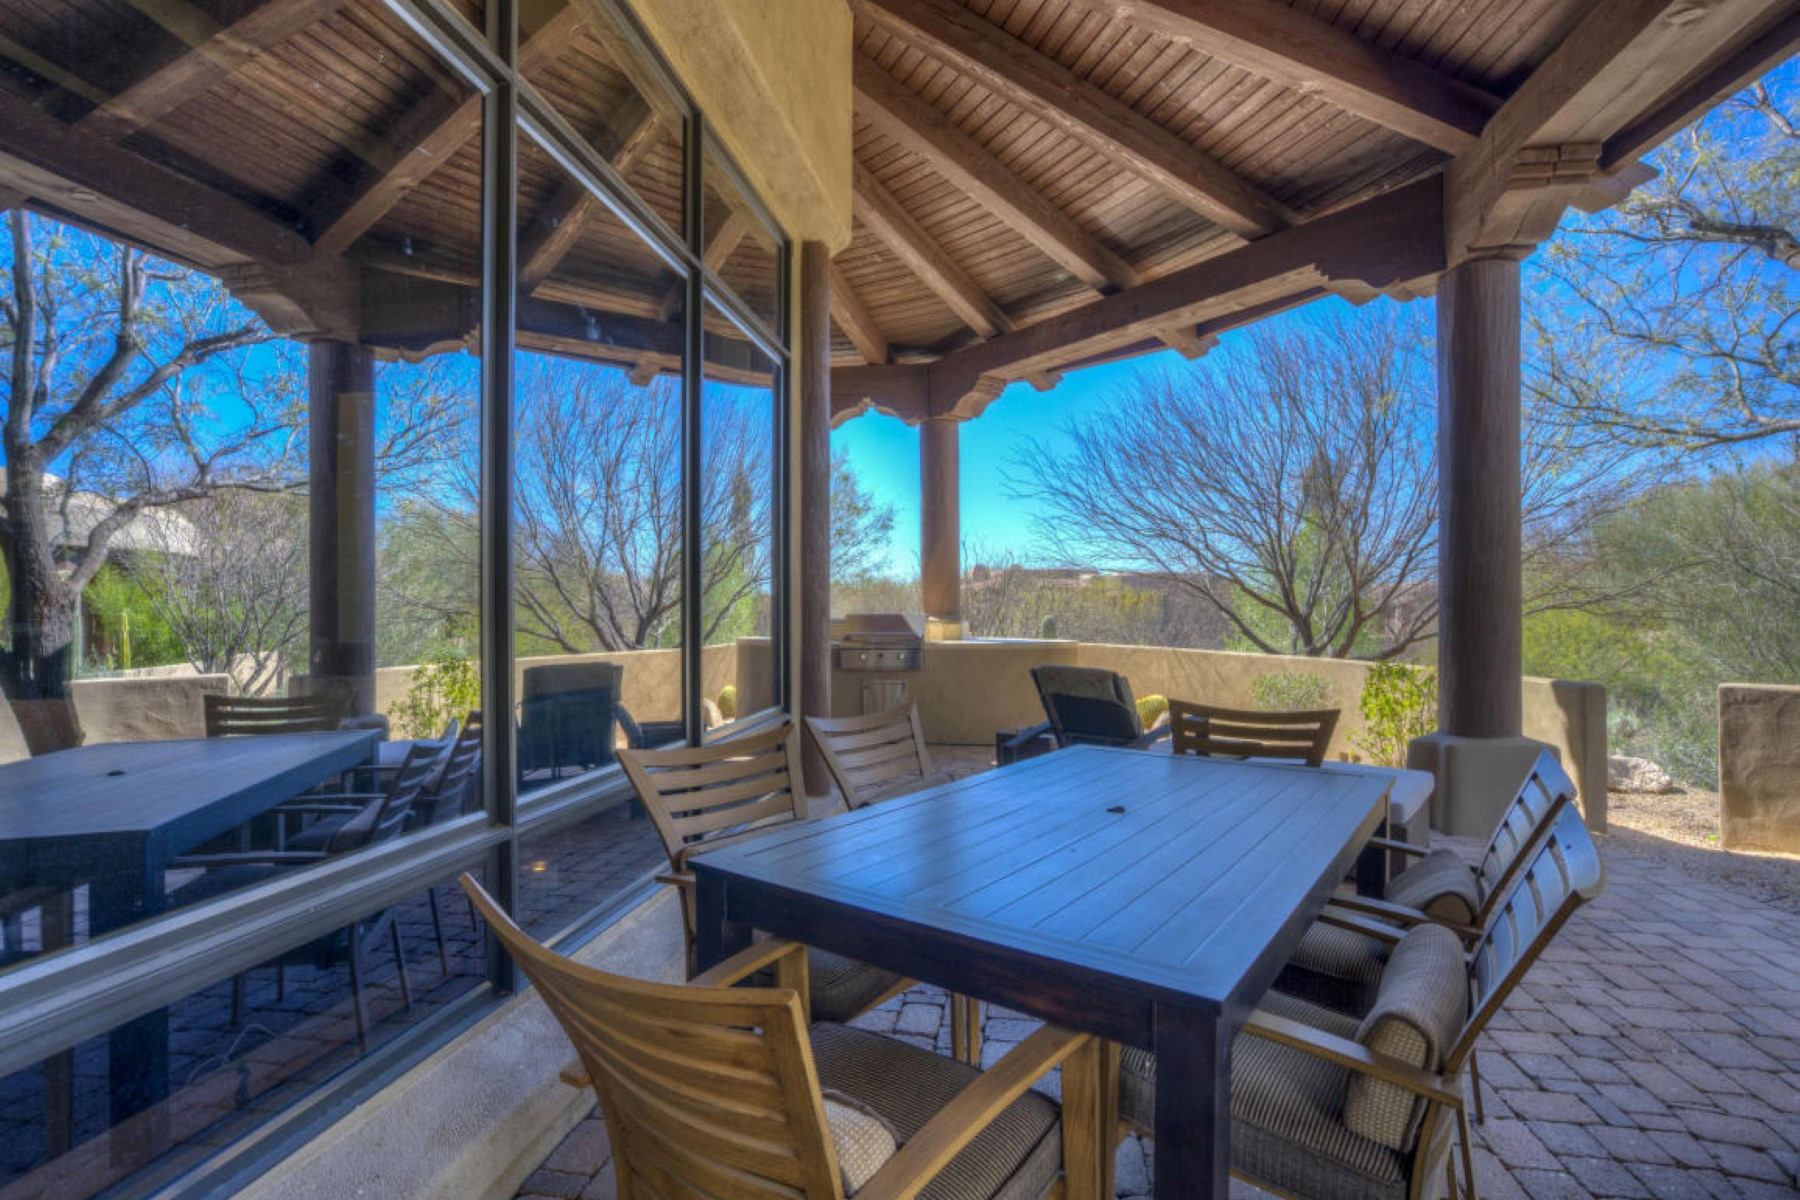 Property Of Lovely rental in The Boulders Scottsdale